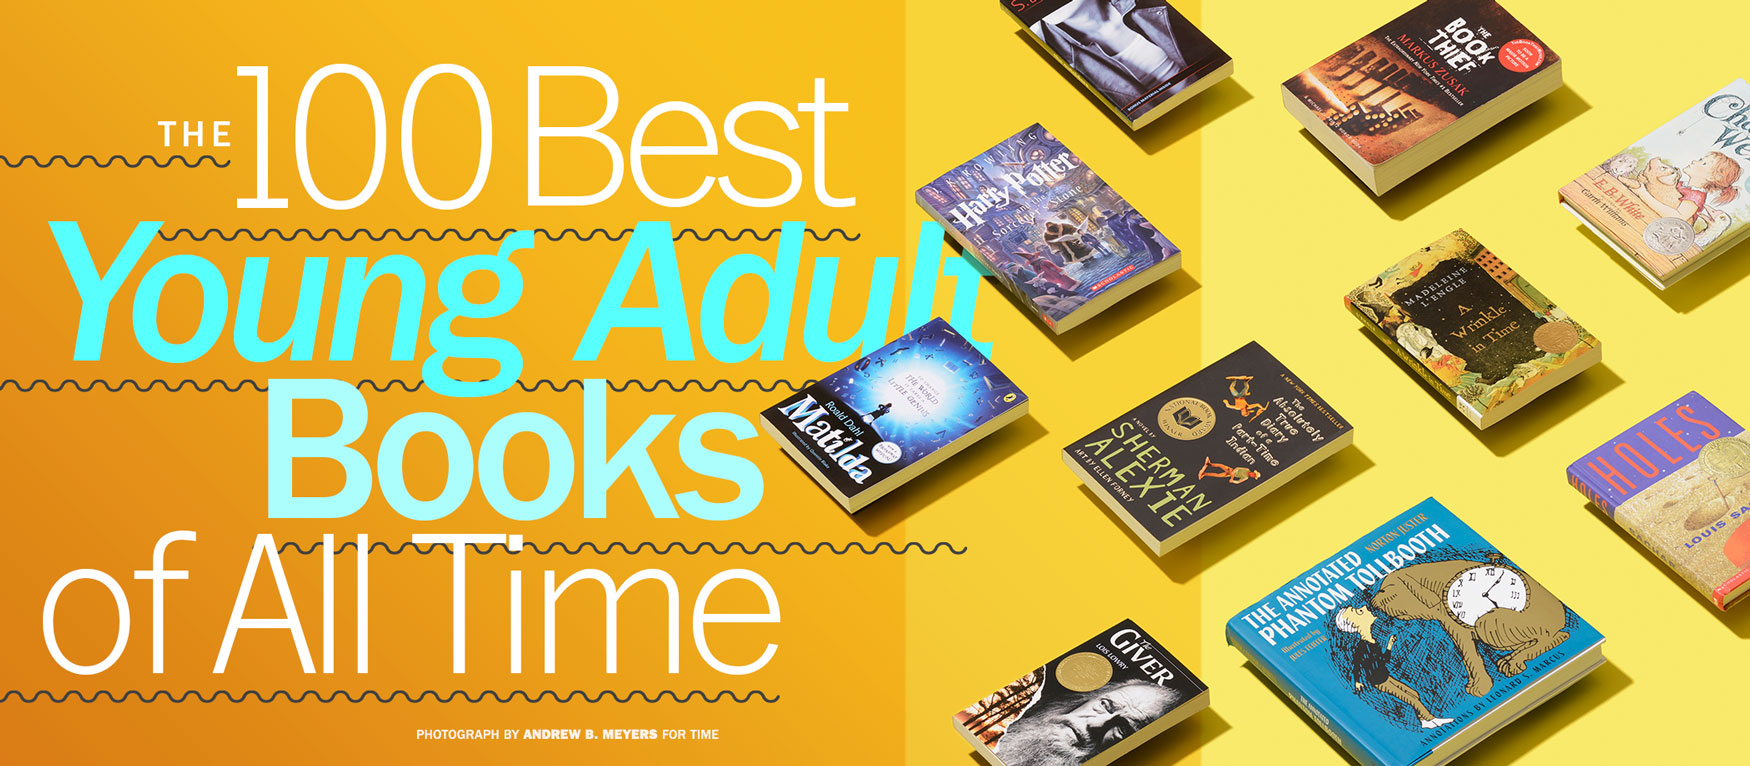 Young adult literature authors